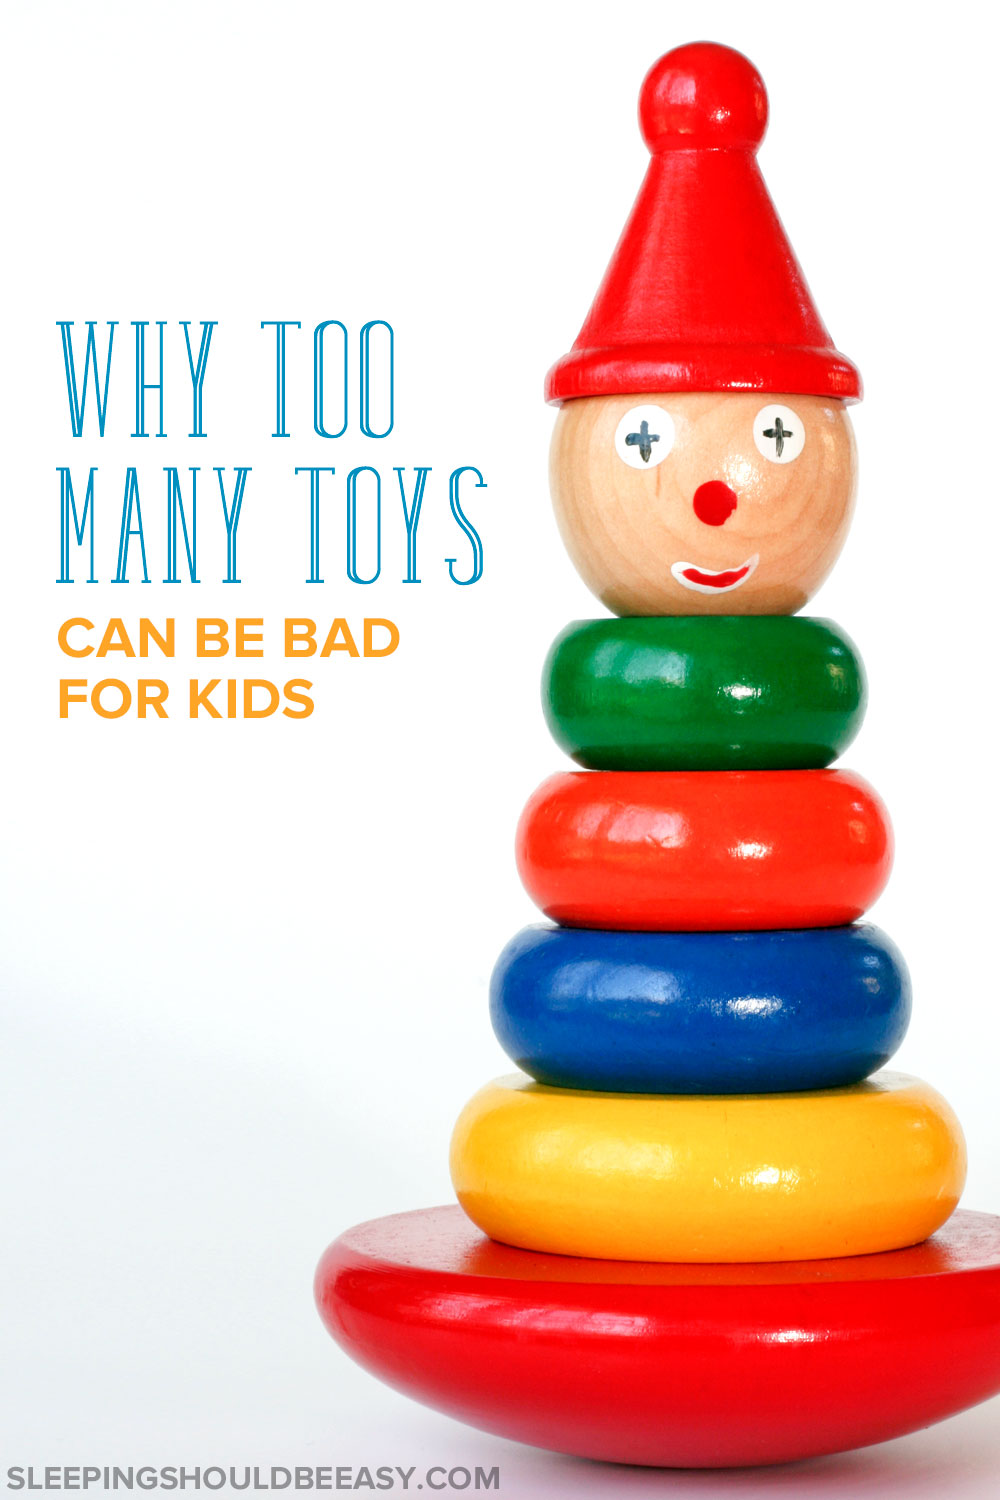 Downsides of having too many toys